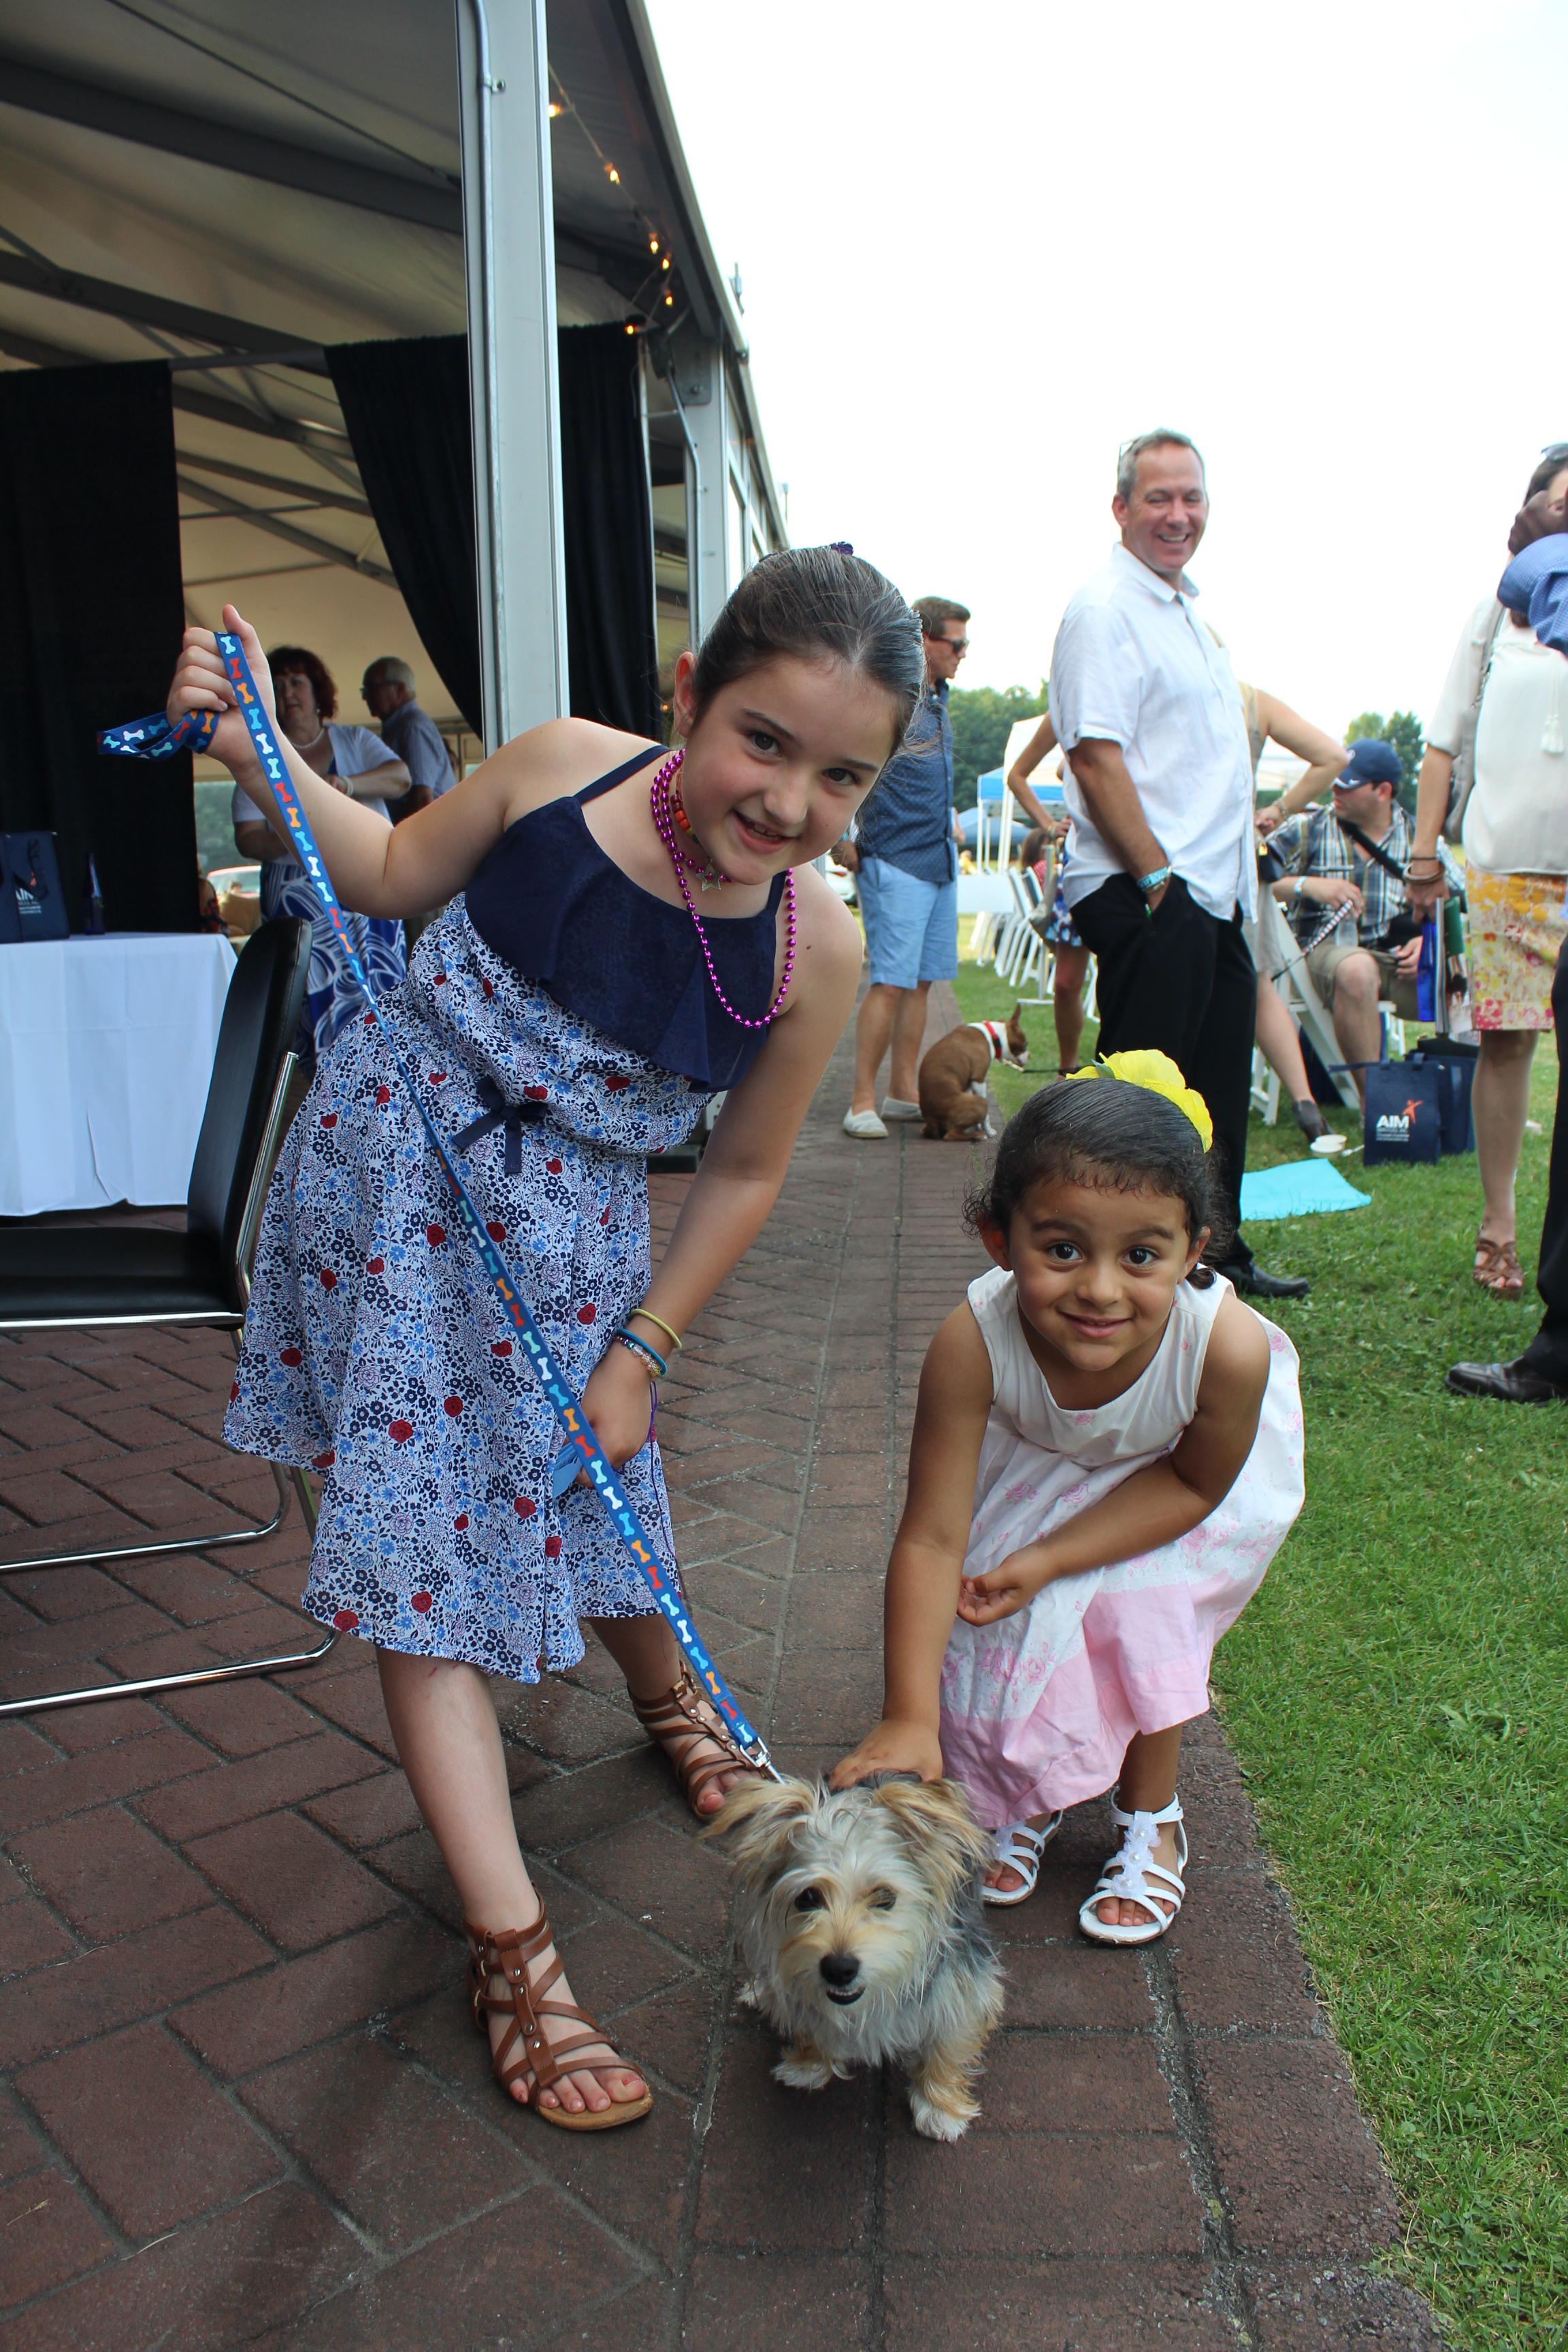 Two young girls smiling with small dog at the Saratoga Dogs Pony Show to benefit AIM Services, Inc.